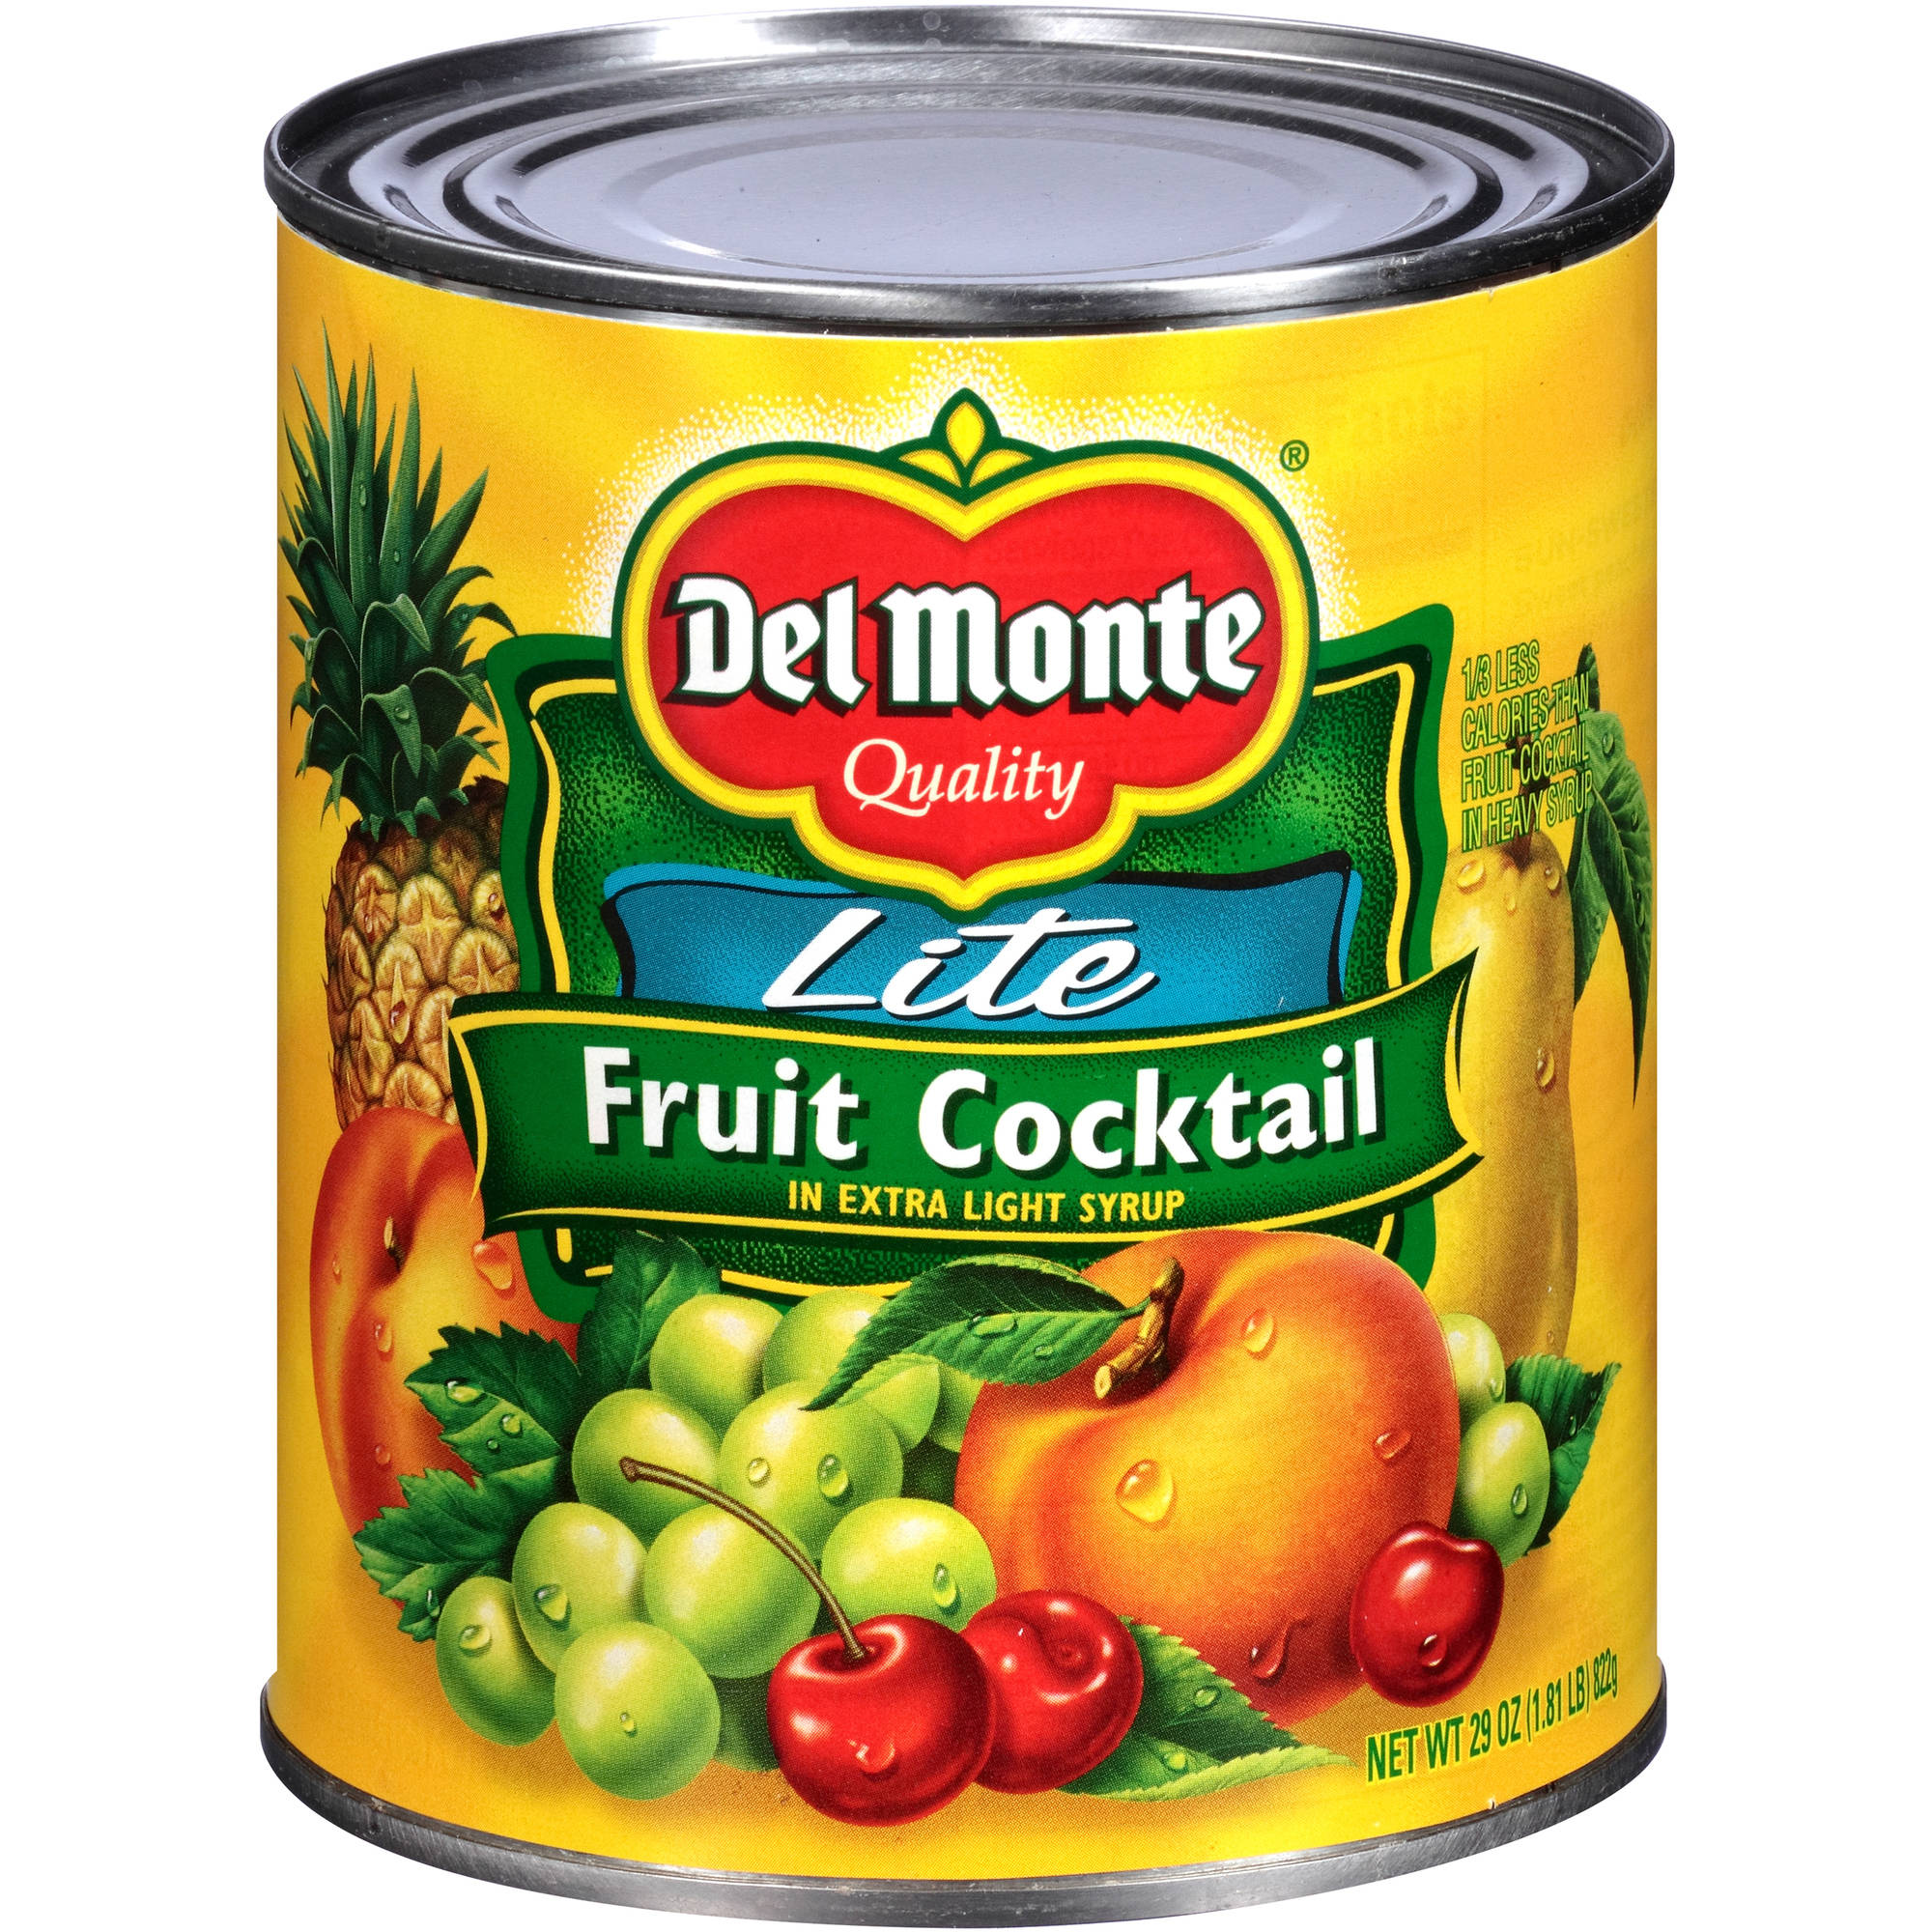 Del Monte Lite Fruit Cocktail in Extra Light Syrup, 29 oz